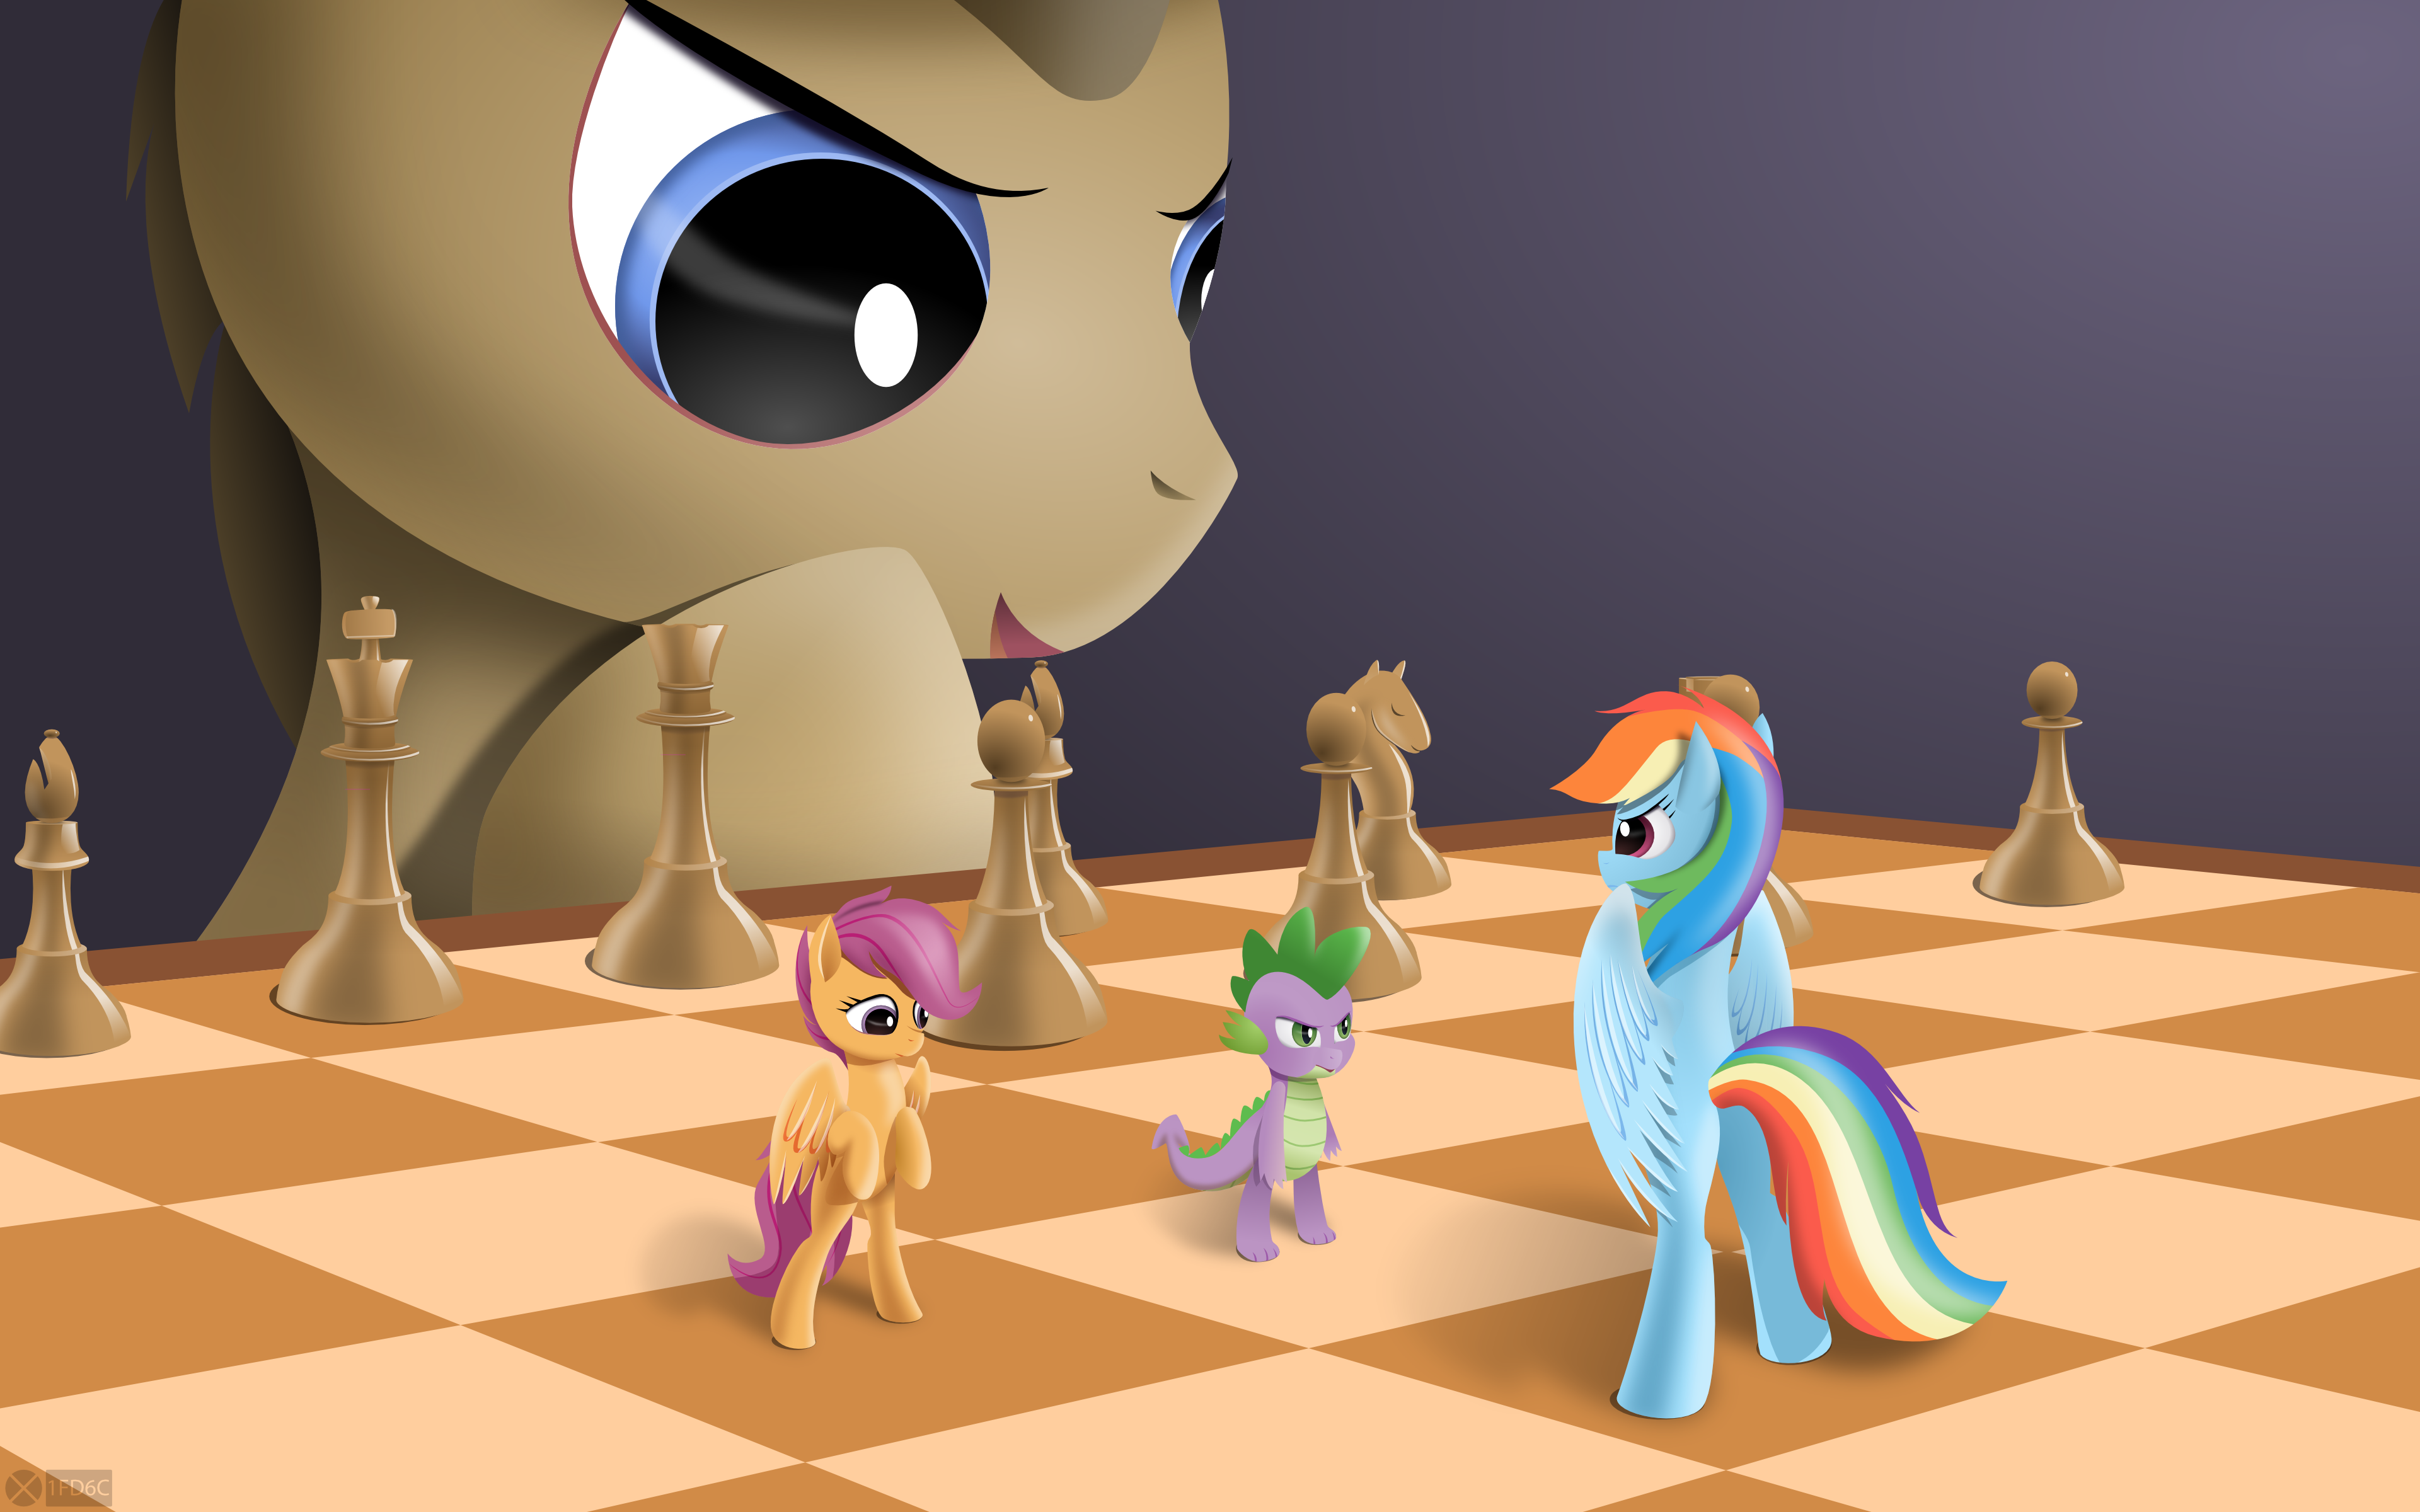 Scootaloos gambit - cover by iOVERD